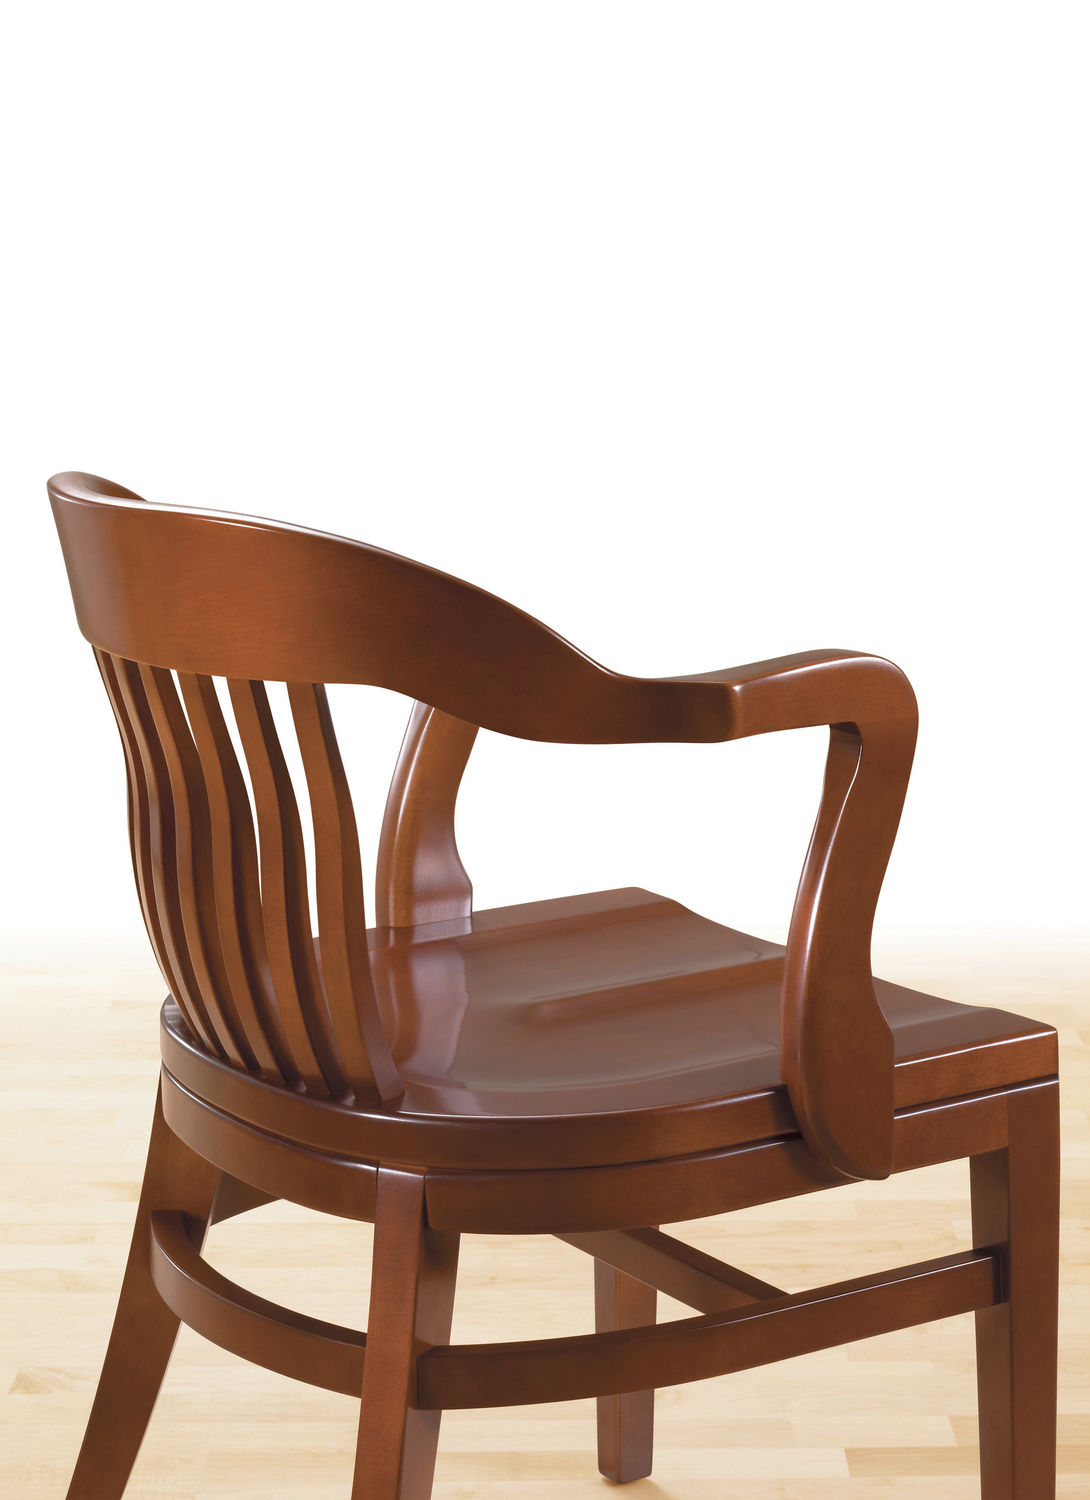 ... classic visitor chair / upholstered / with armrests / leather ...  sc 1 st  ArchiExpo & Classic visitor chair / upholstered / with armrests / leather - BANK ...